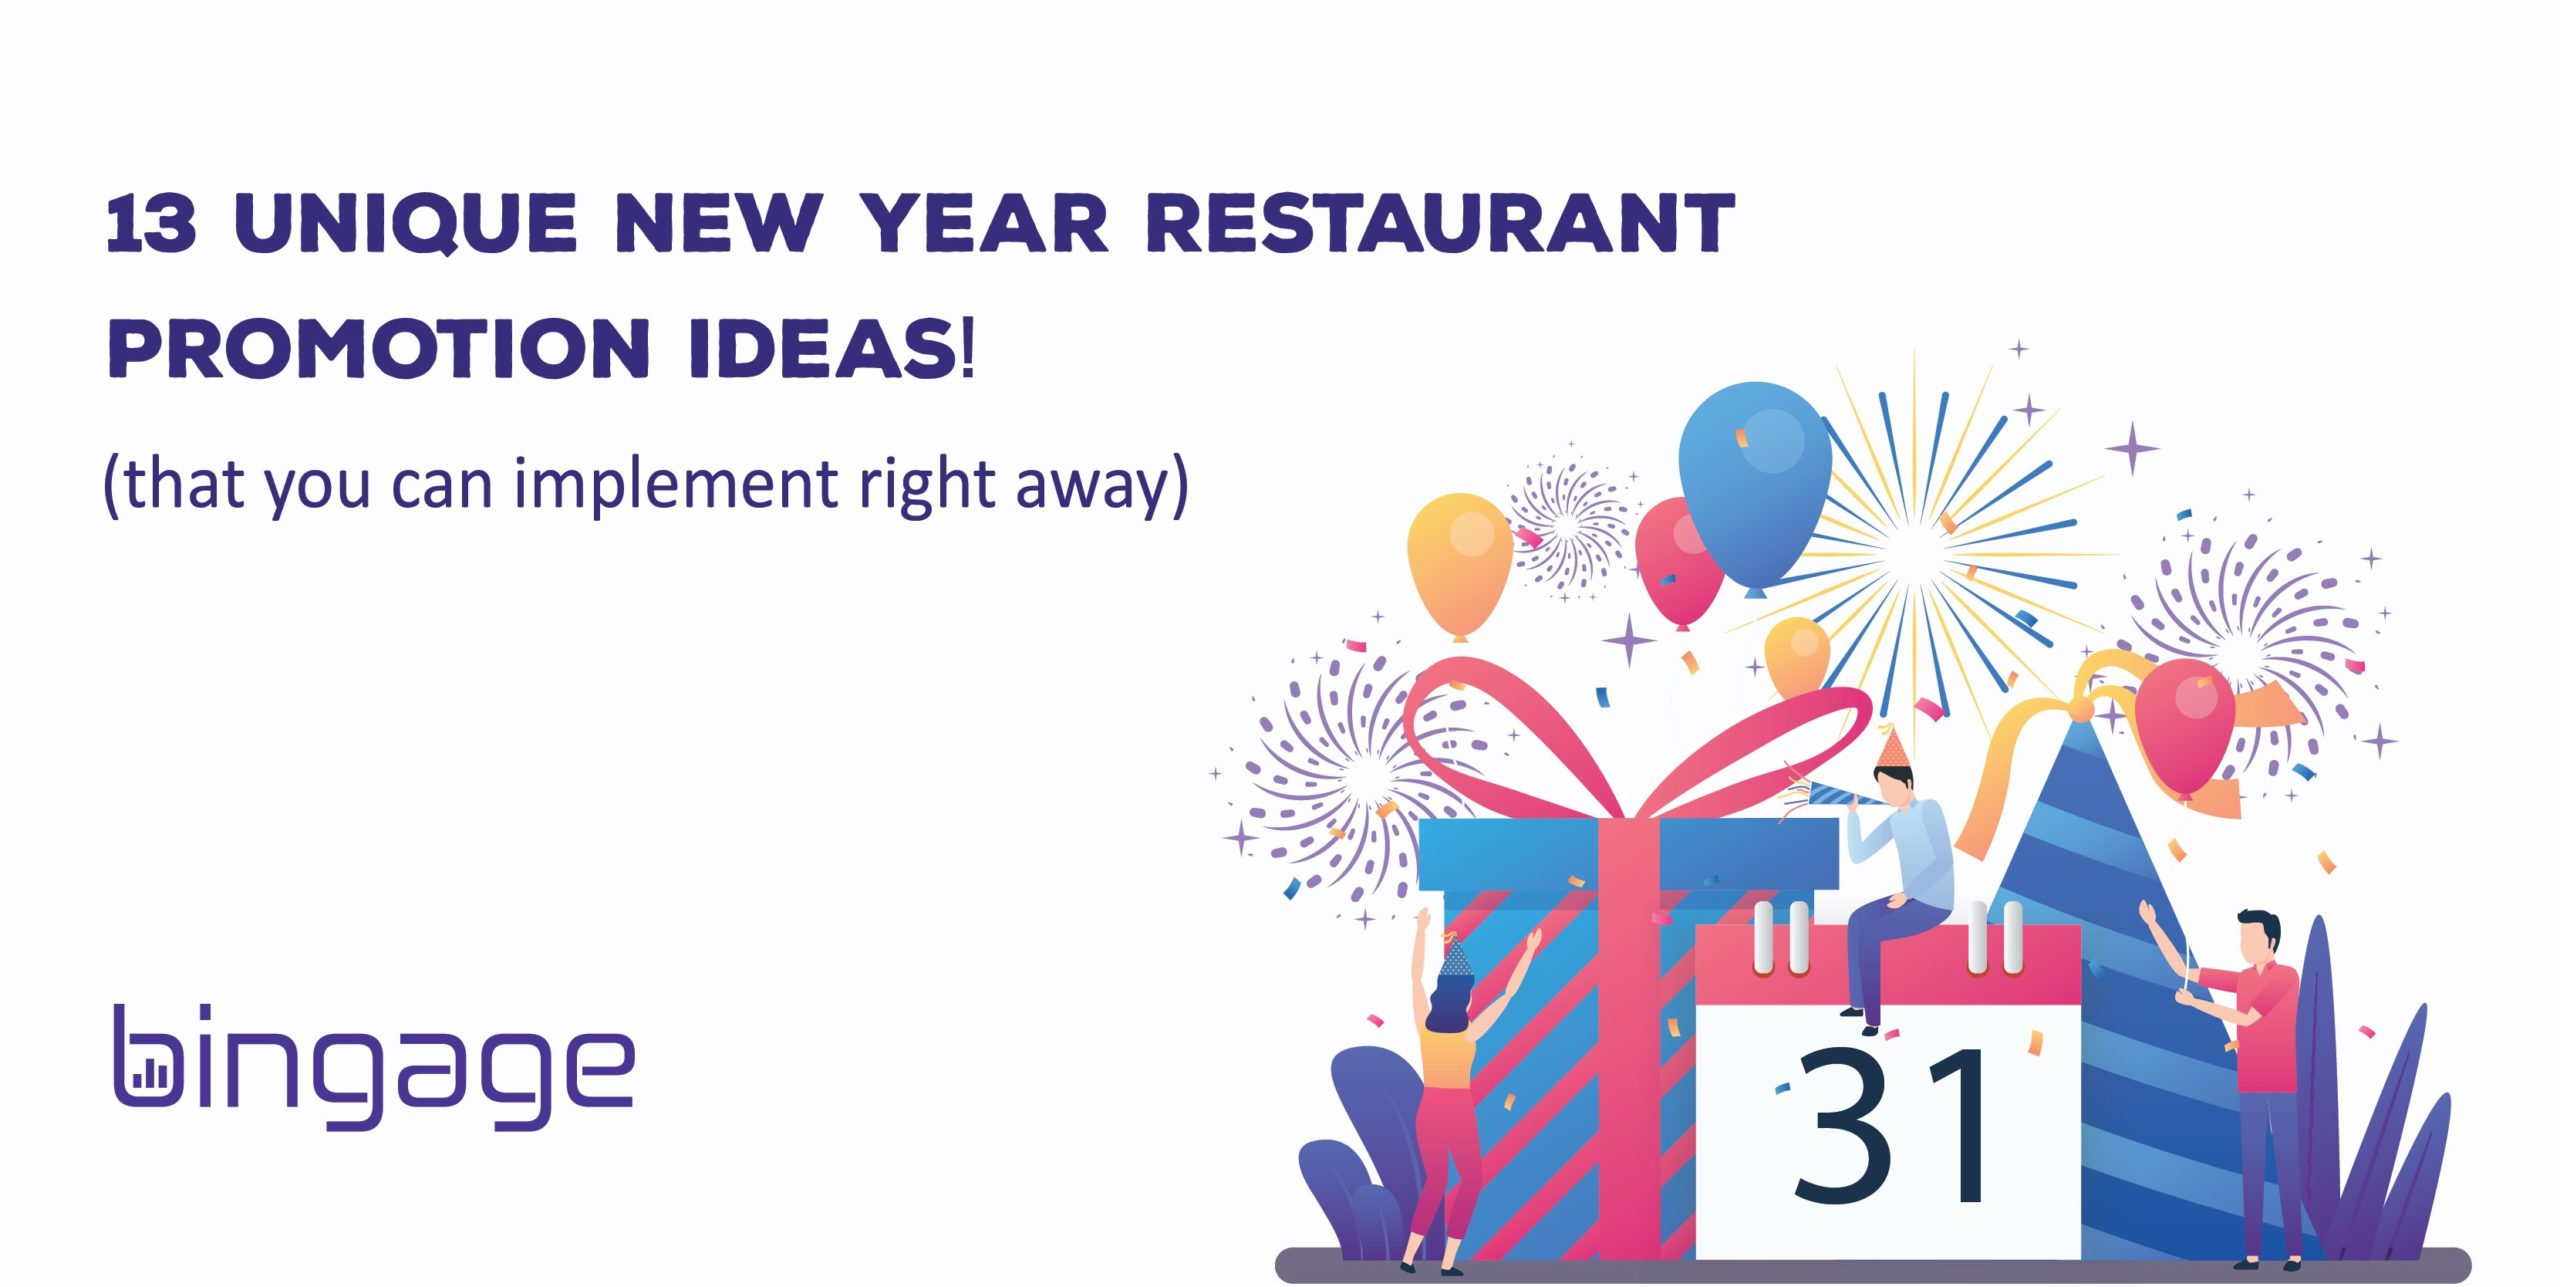 13 Simplest Yet Creative New Year Restaurant Promotion Ideas